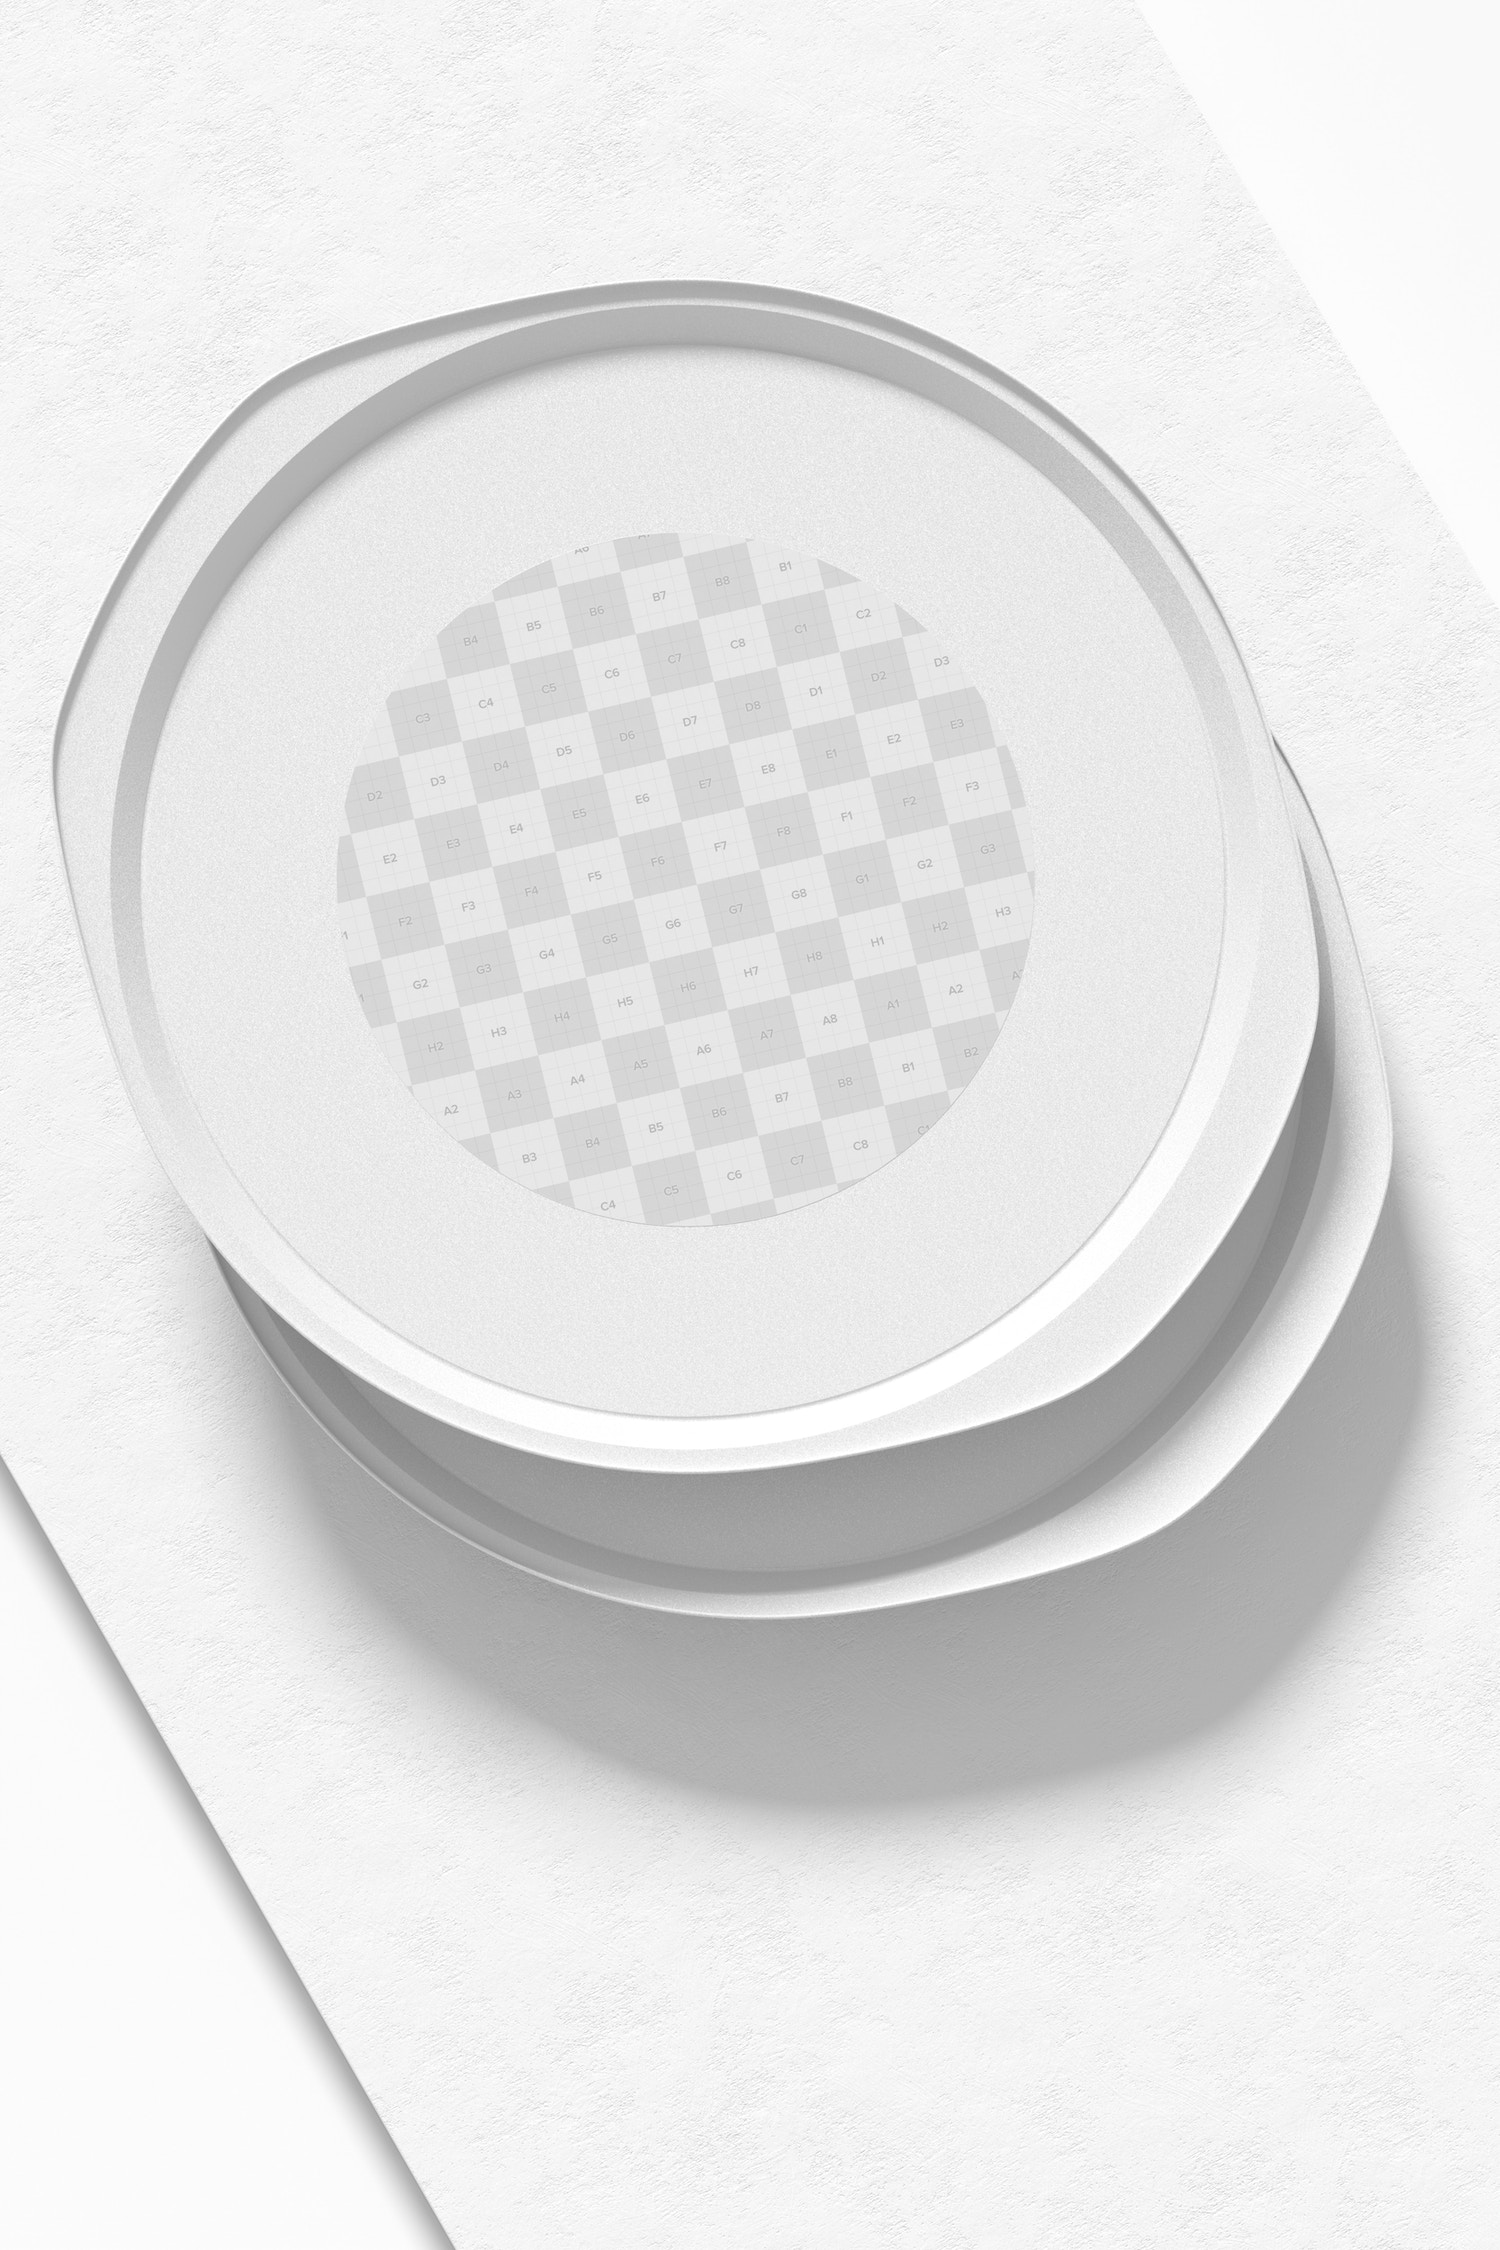 Pizza Pans Mockup, Top View